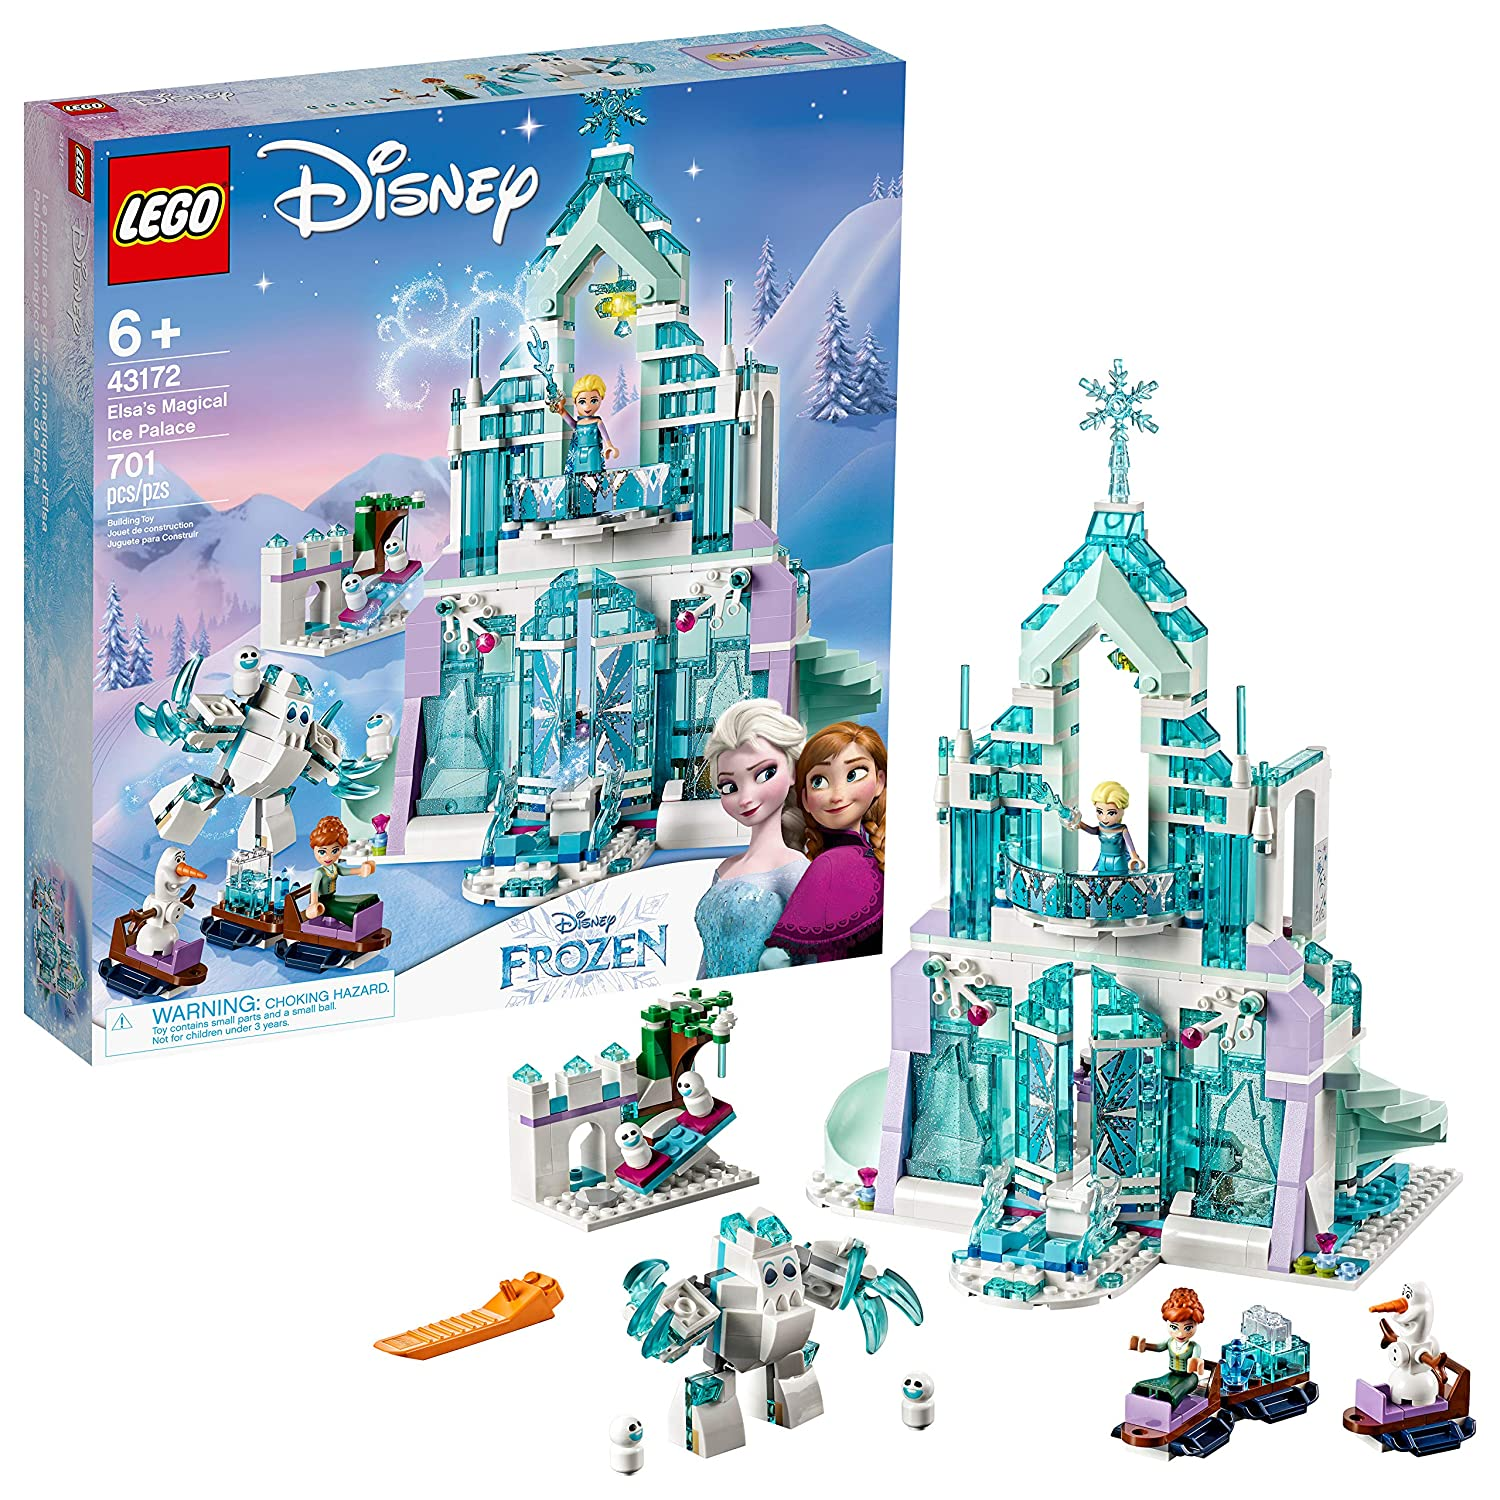 LEGO Disney Princess Elsa's Magical Ice Palace 43172 Toy Castle Building  Kit with Mini Dolls, Castle Playset with Popular Frozen Characters  including